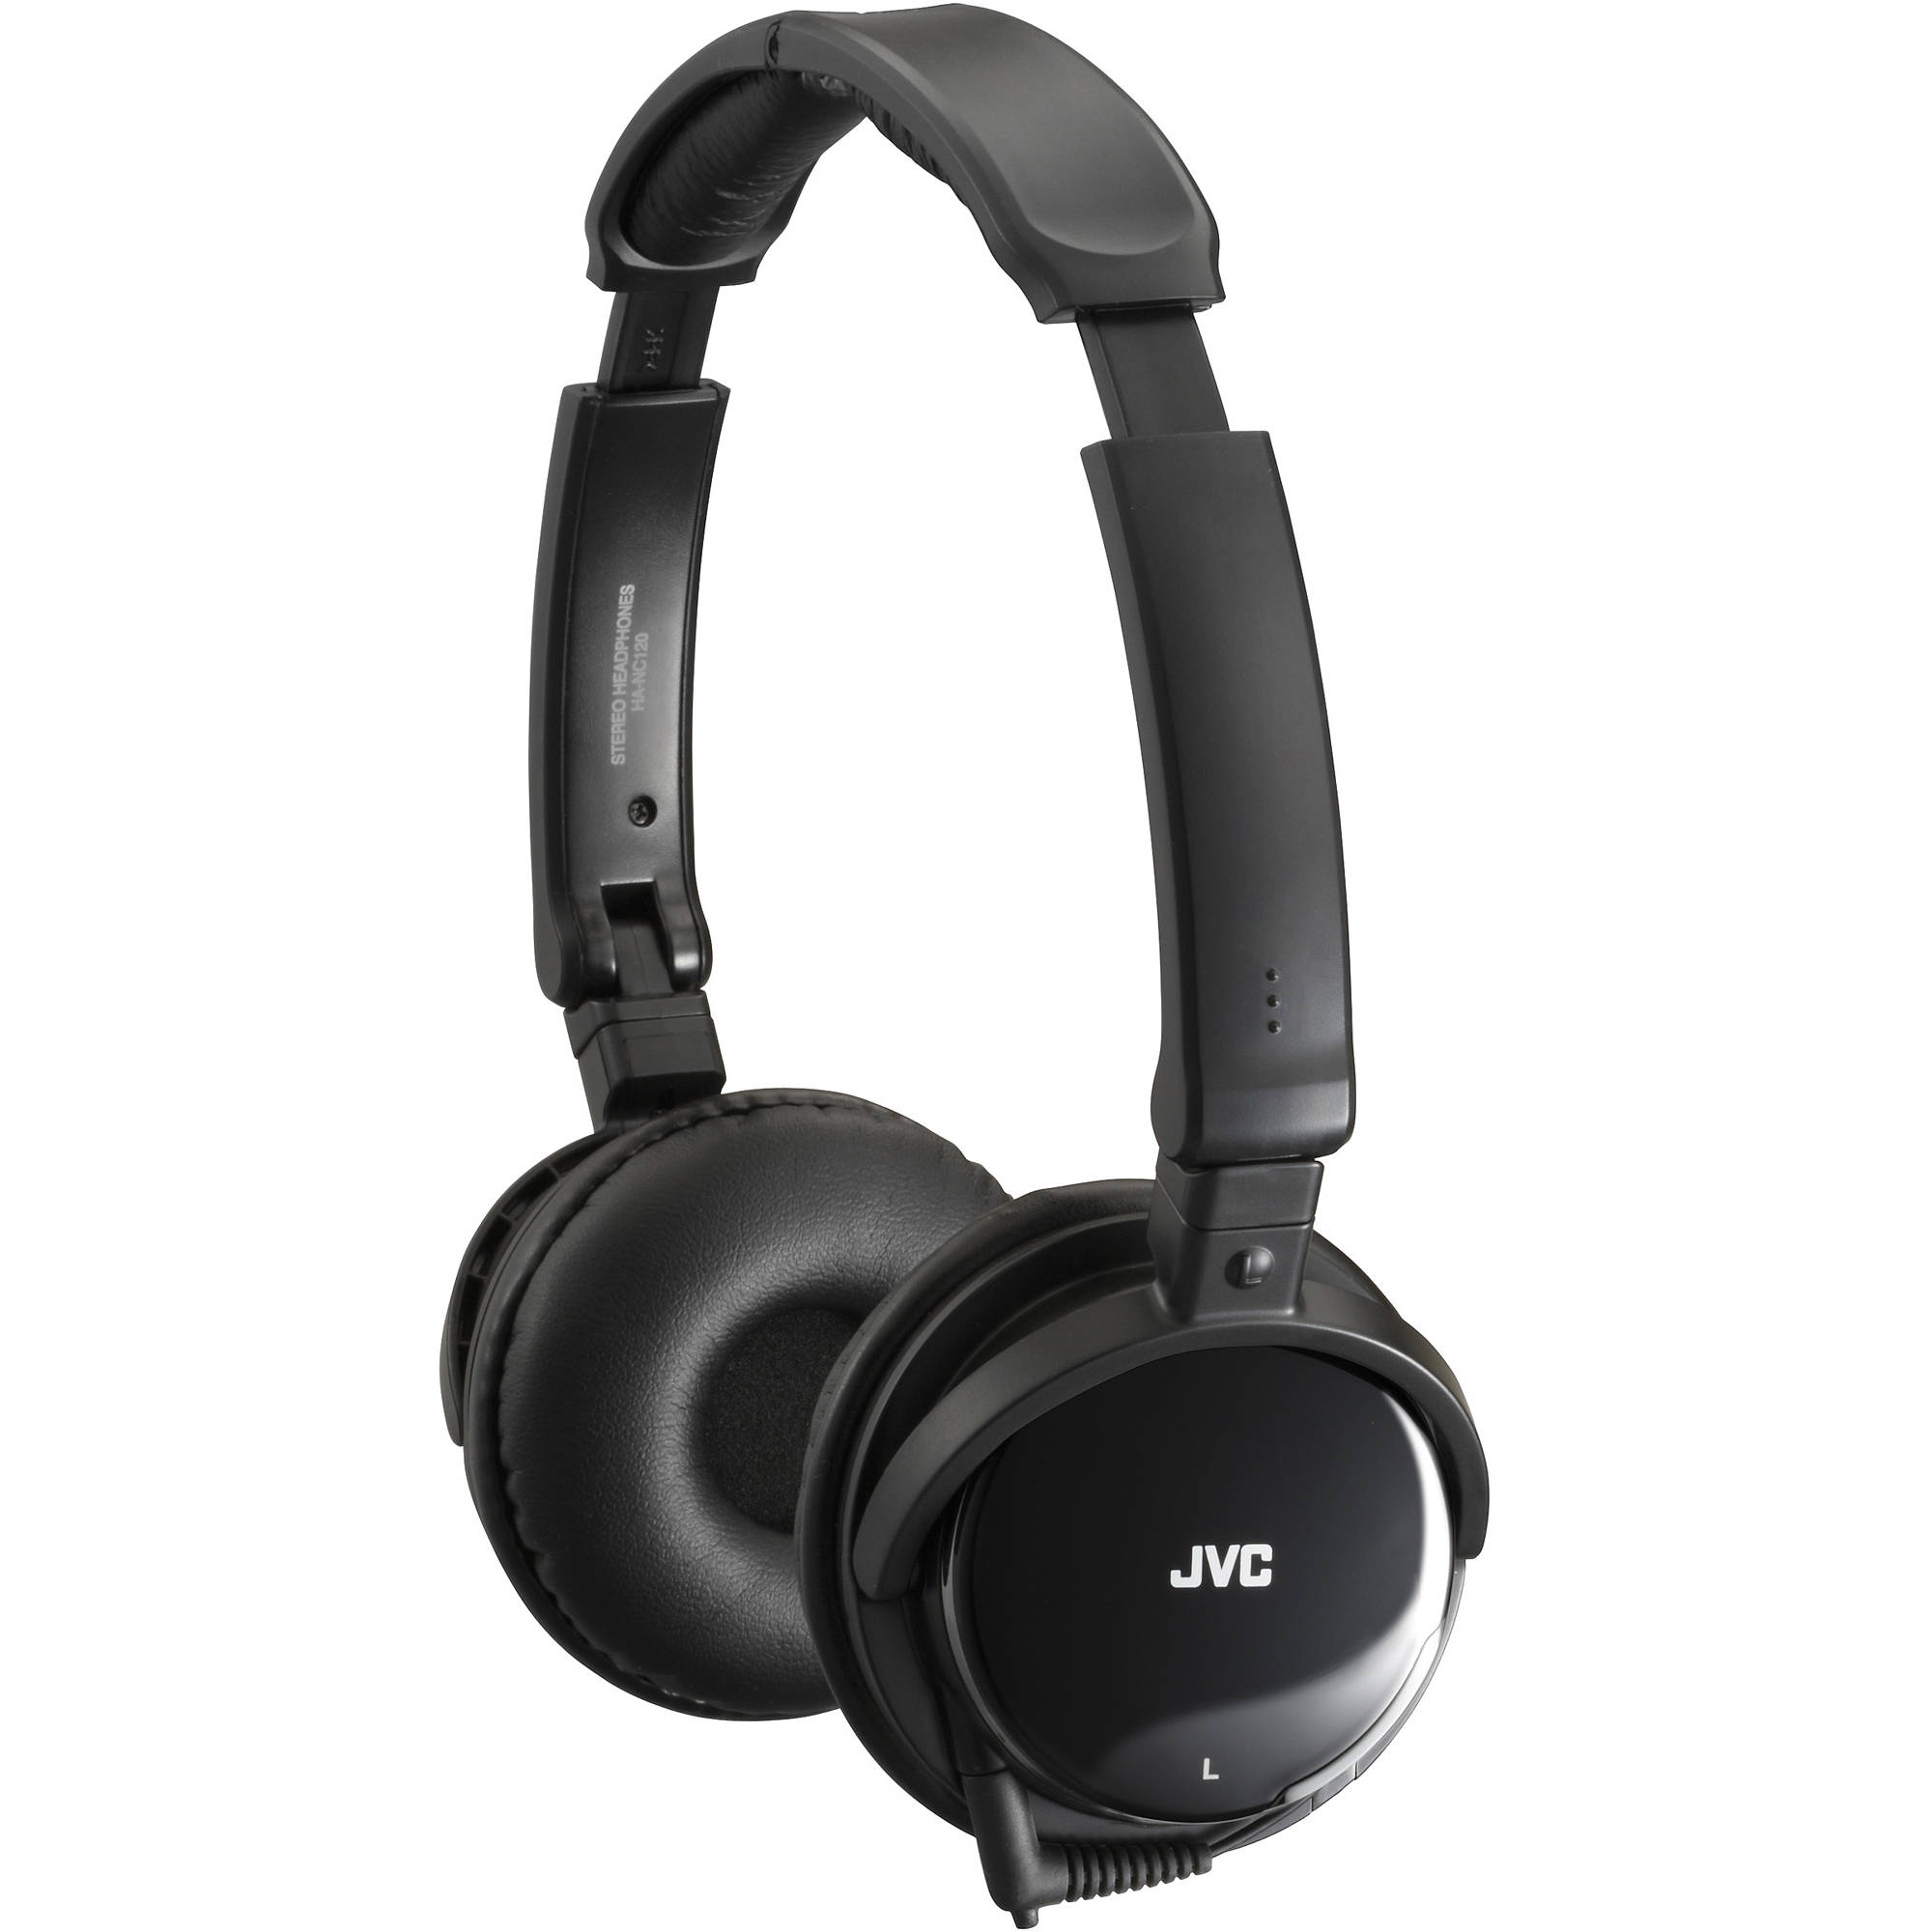 JVC HA-NC120 On-Ear Noise Canceling Headphones HANC120 B\u0026H Photo